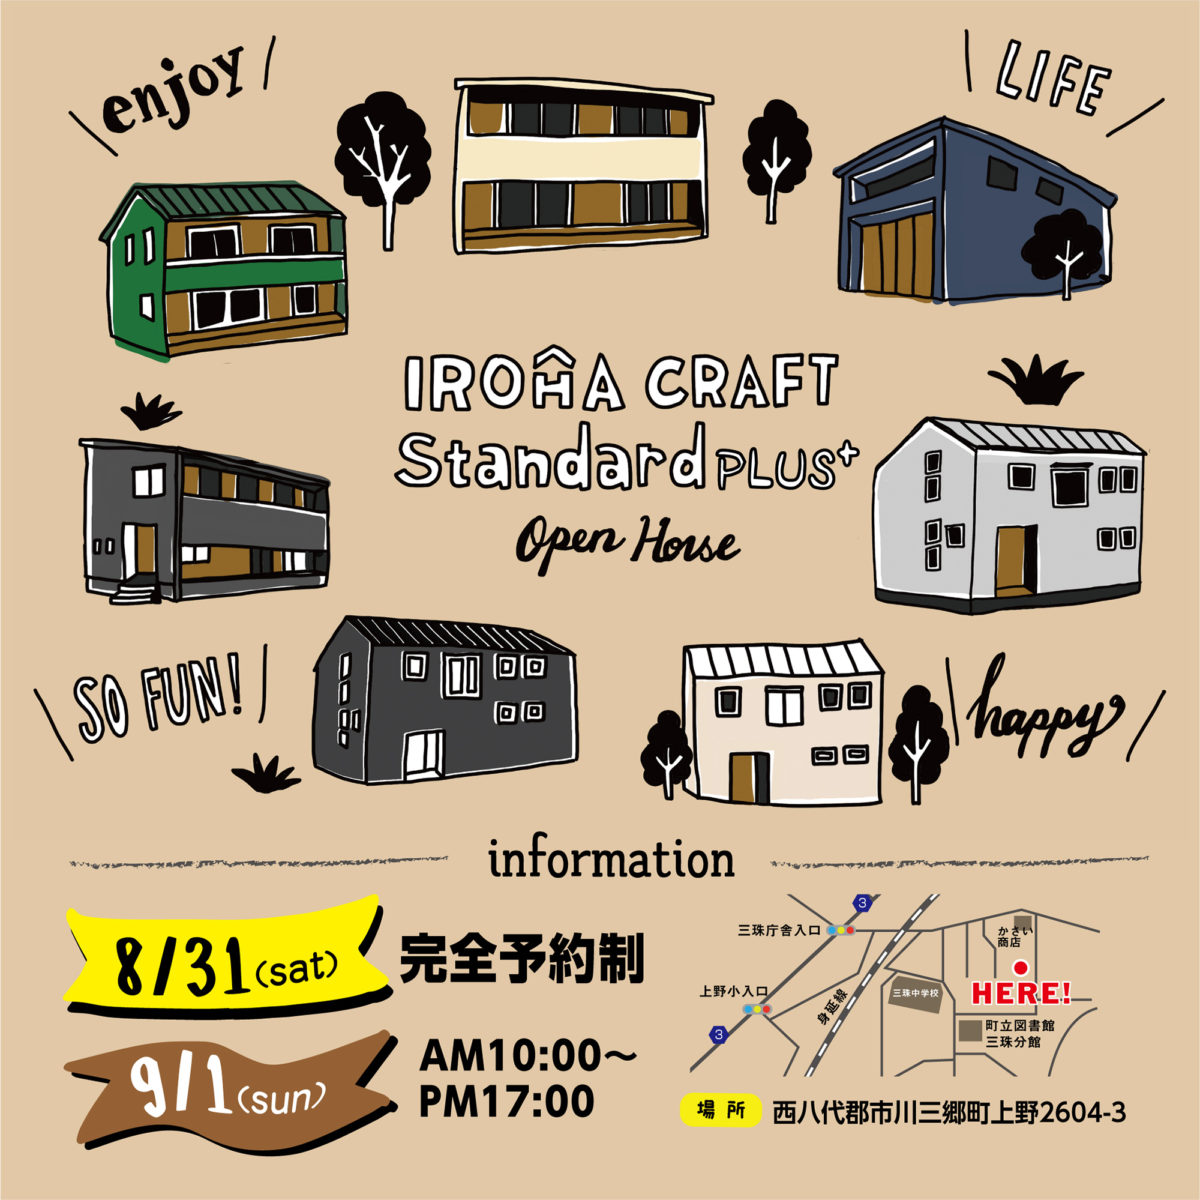 IROHA CRAFT Standard PLUS+ OPEN HOUSEのお知らせ